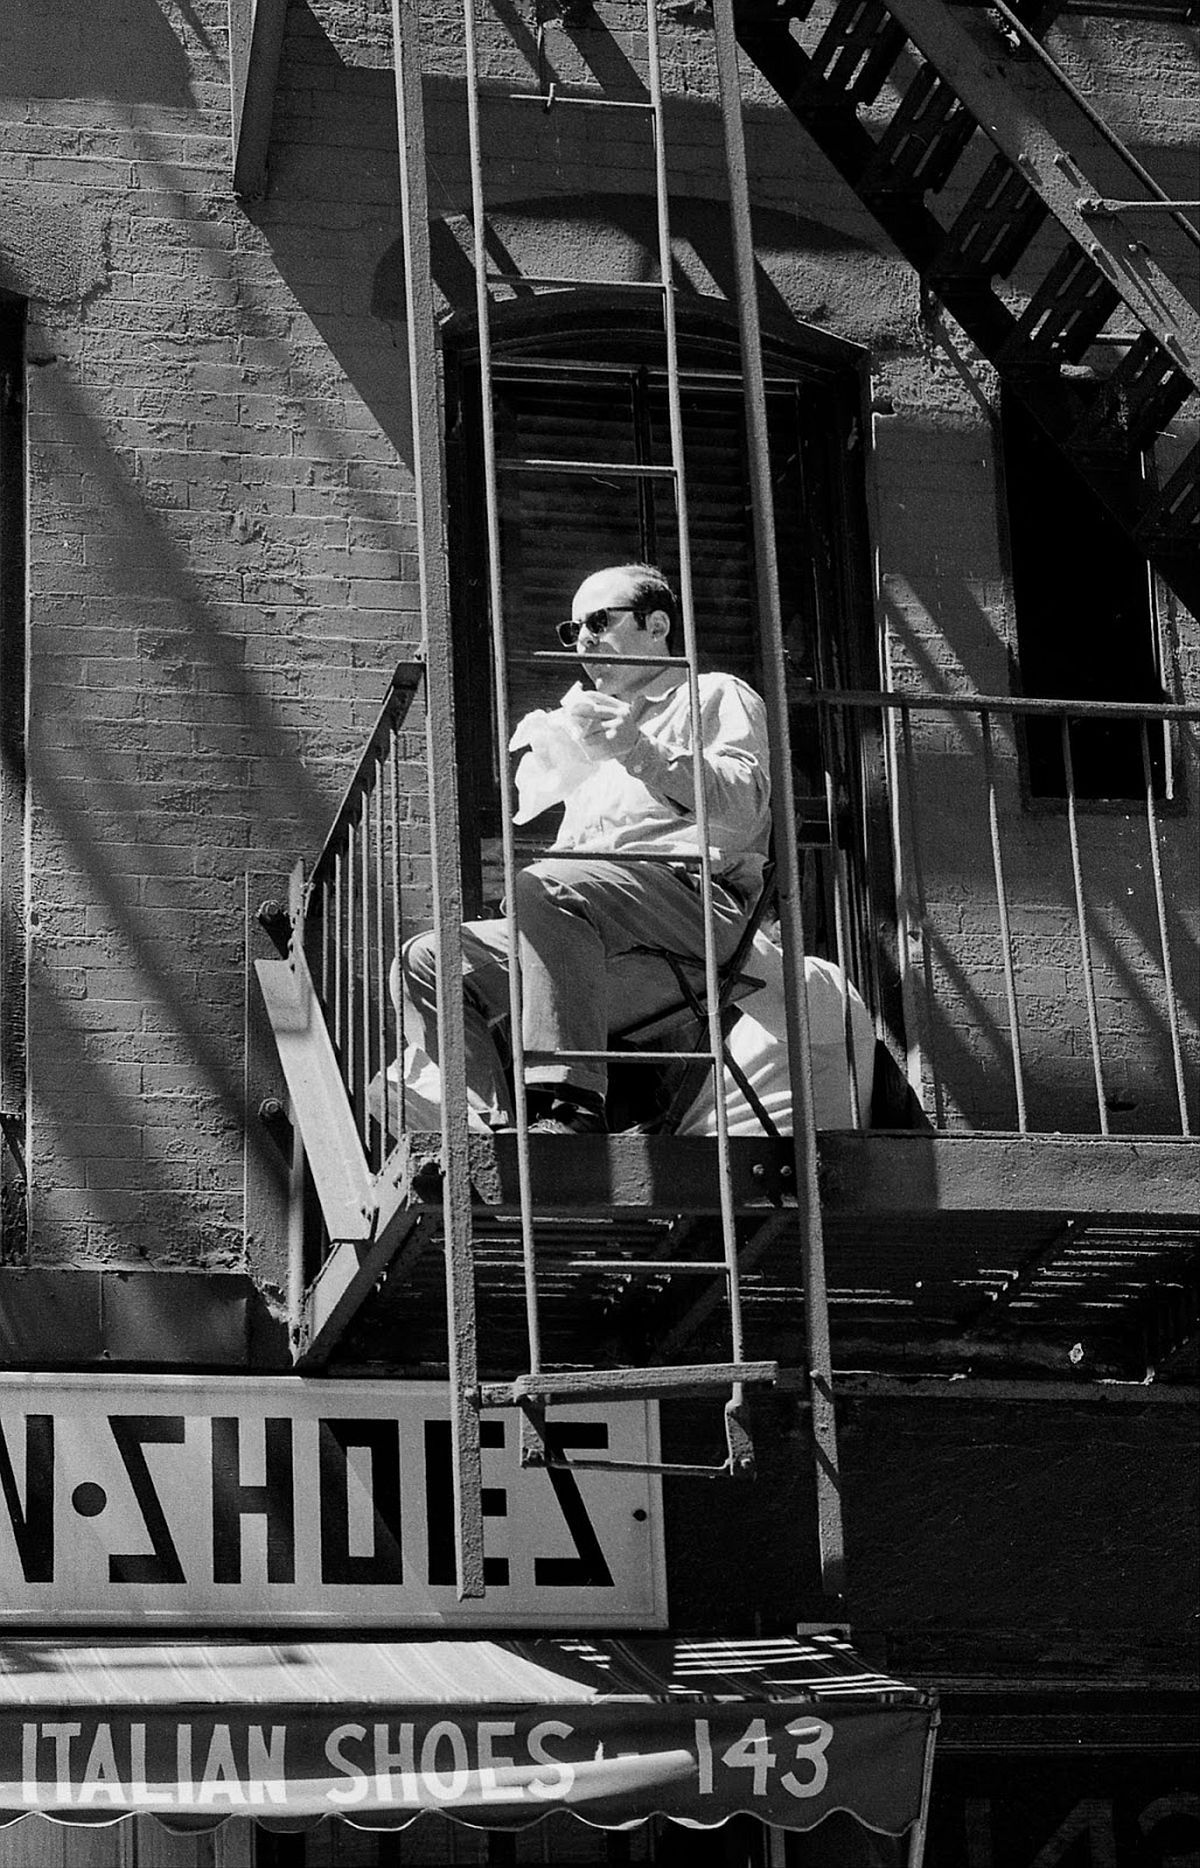 A Little Italy resident watches the production while eating lunch on his fire escape.